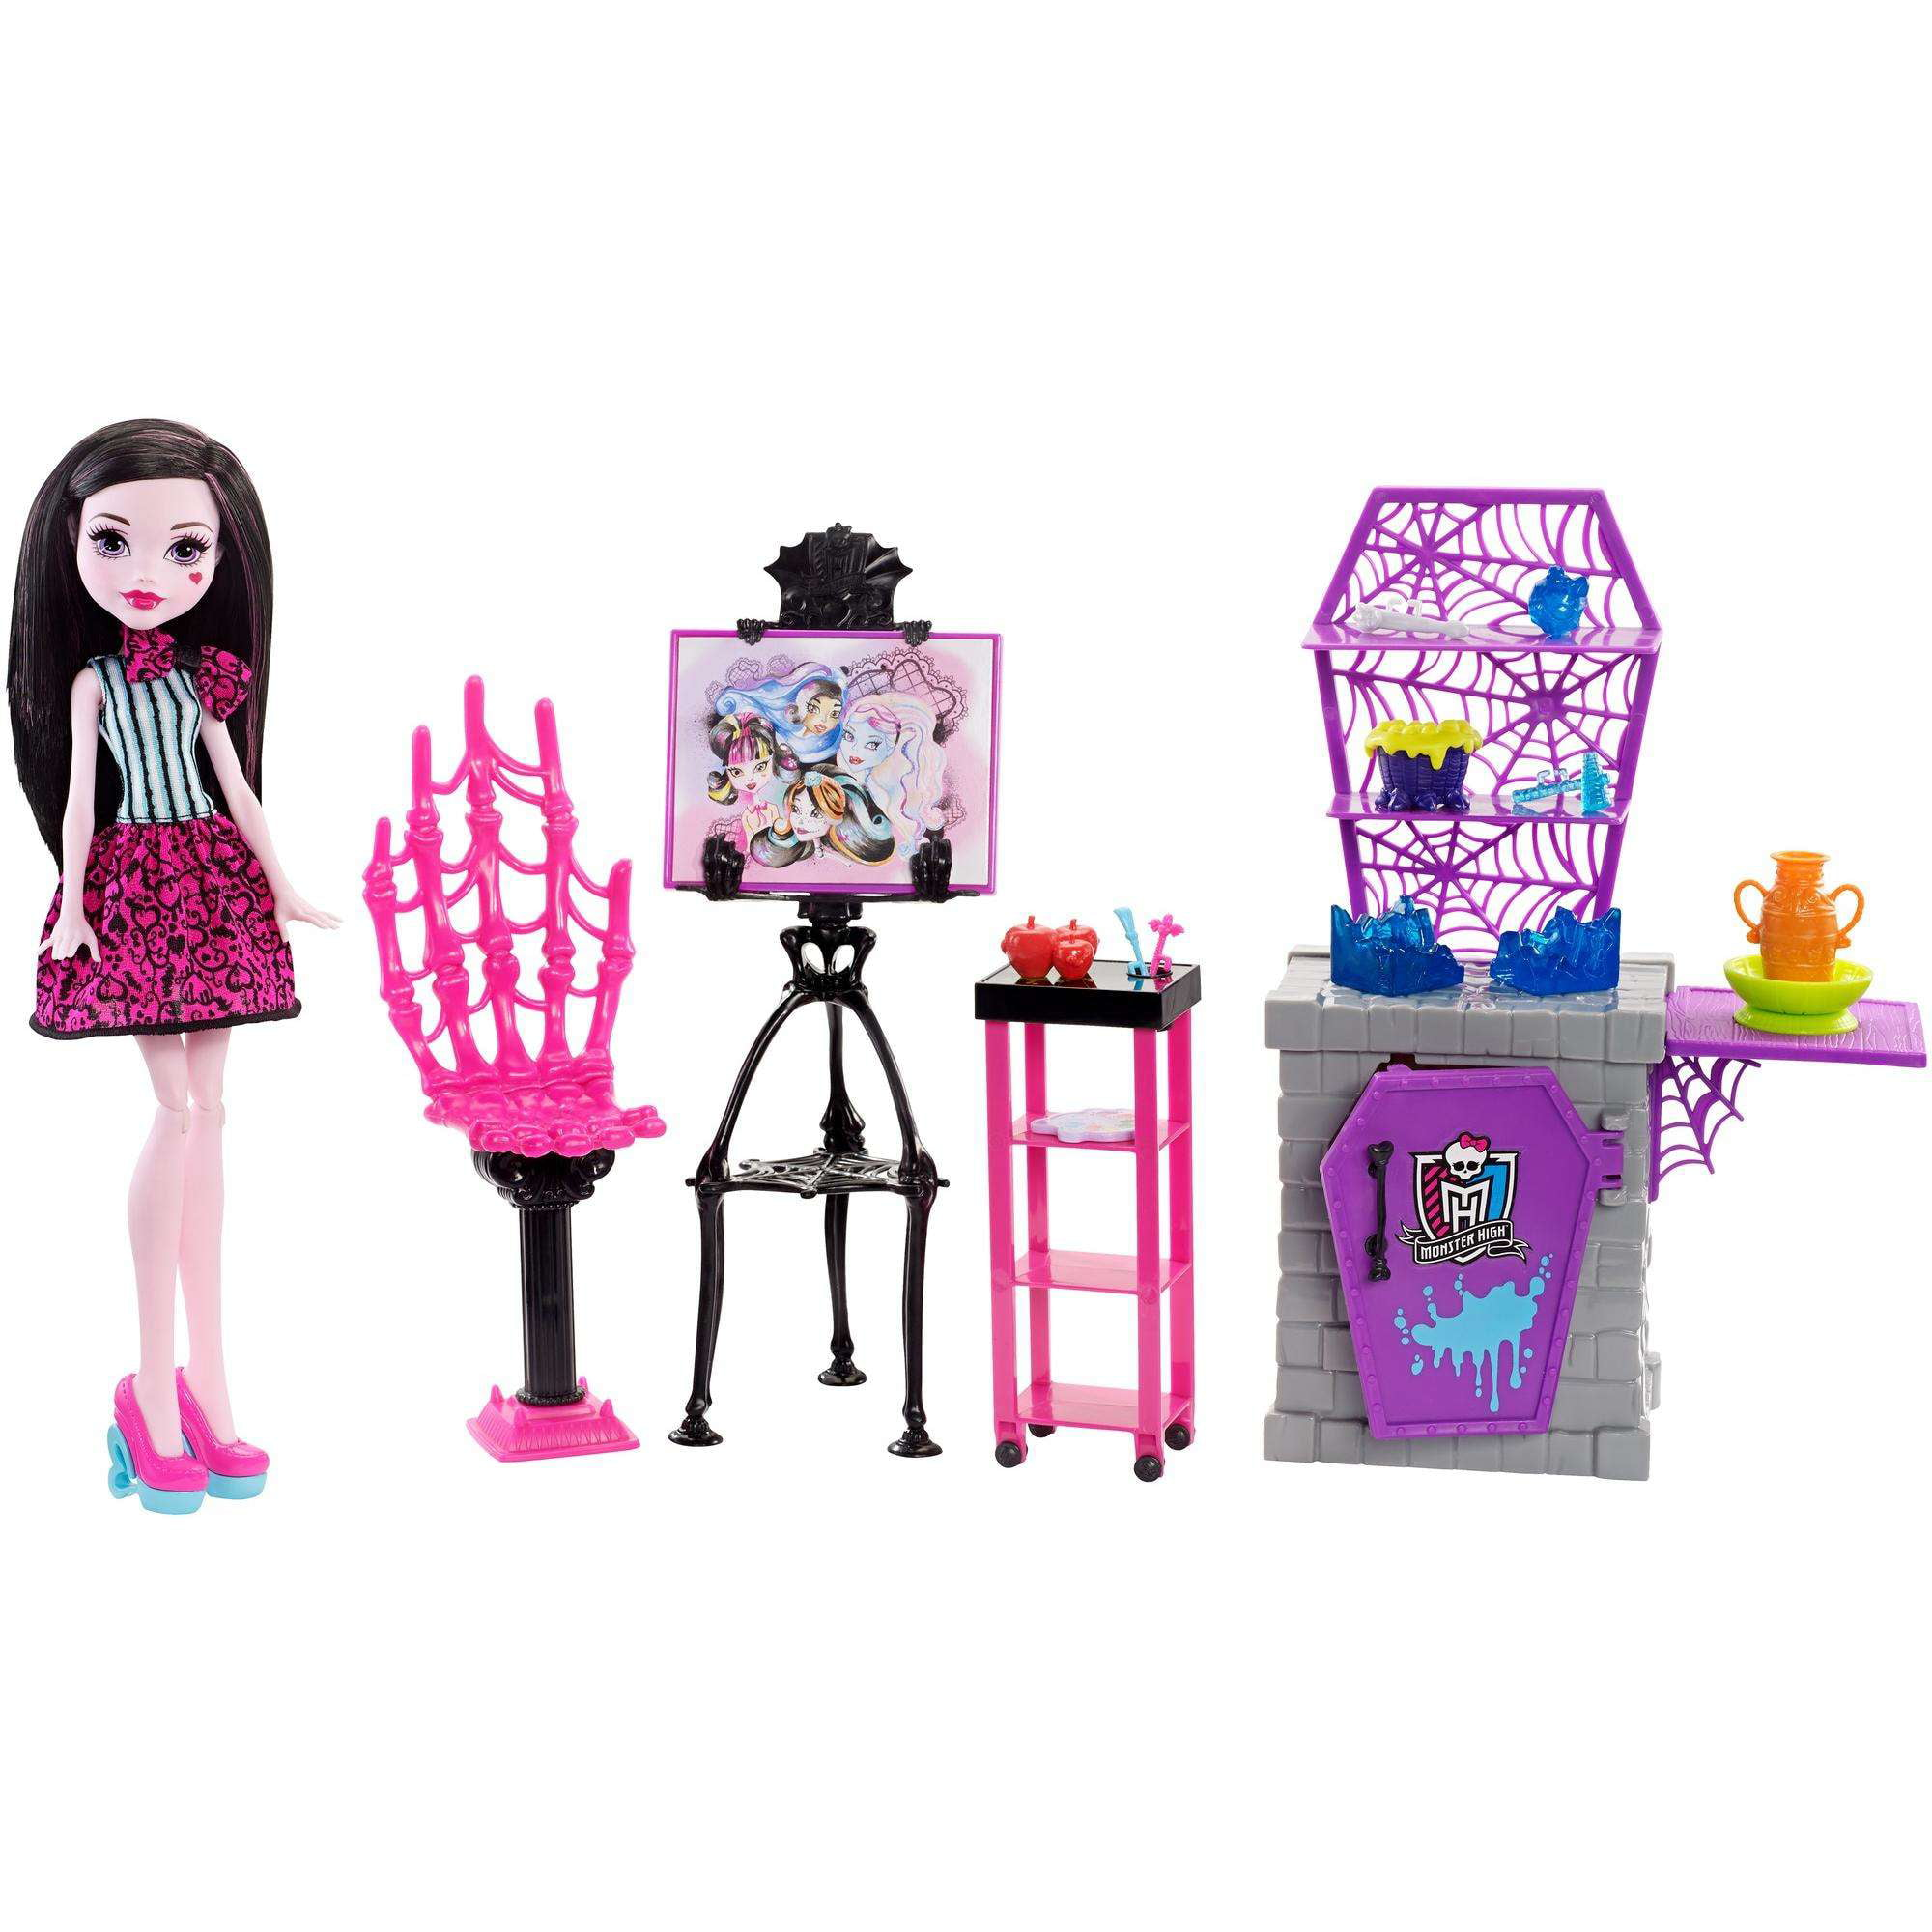 Monster High Skulltimate Art Class Draculaura Doll & Playset by MATTEL BRANDS A DIVISION OF MATTEL DIRECT IMPORT INC